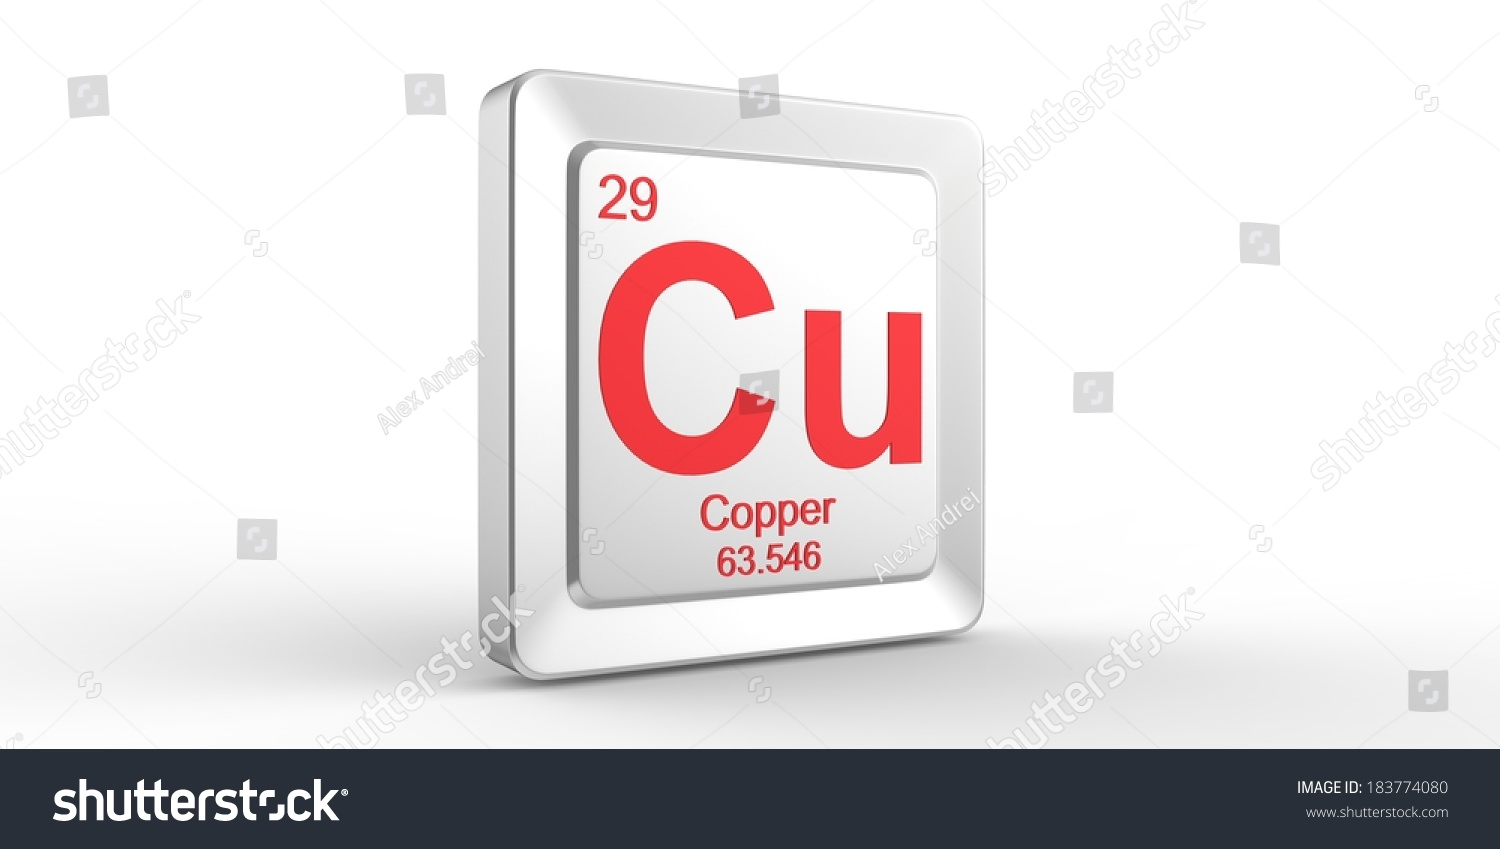 Symbol for copper gallery symbol and sign ideas cu symbol 29 material copper chemical stock illustration 183774080 cu symbol 29 material for copper chemical buycottarizona